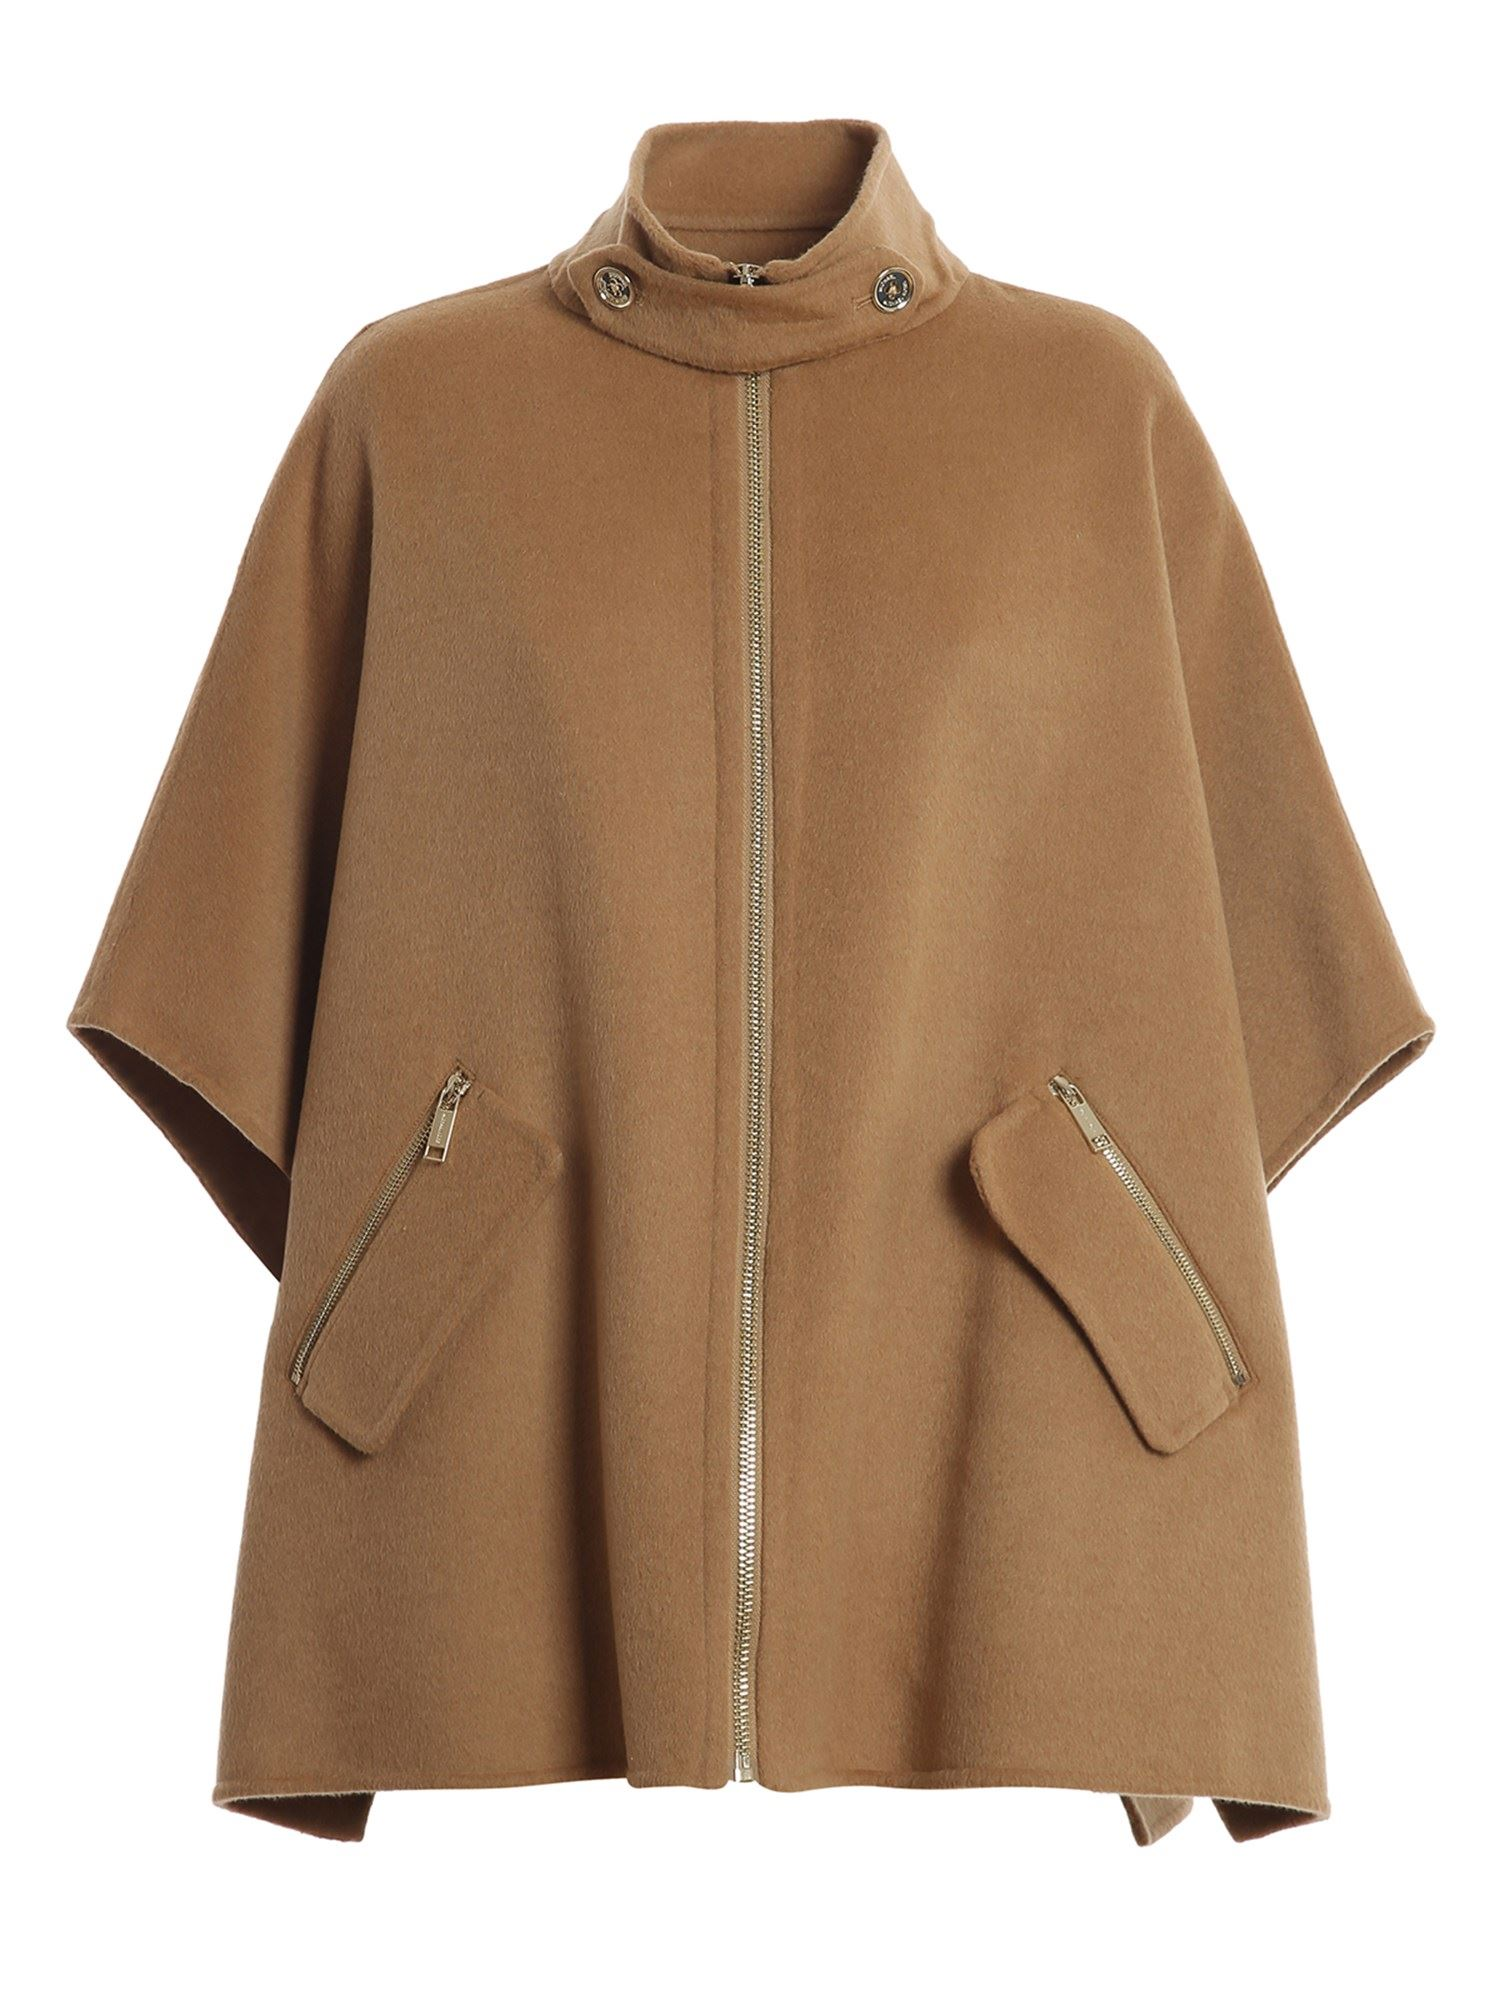 Michael Kors WOOL BLEND PONCHO IN CAMEL COLOR